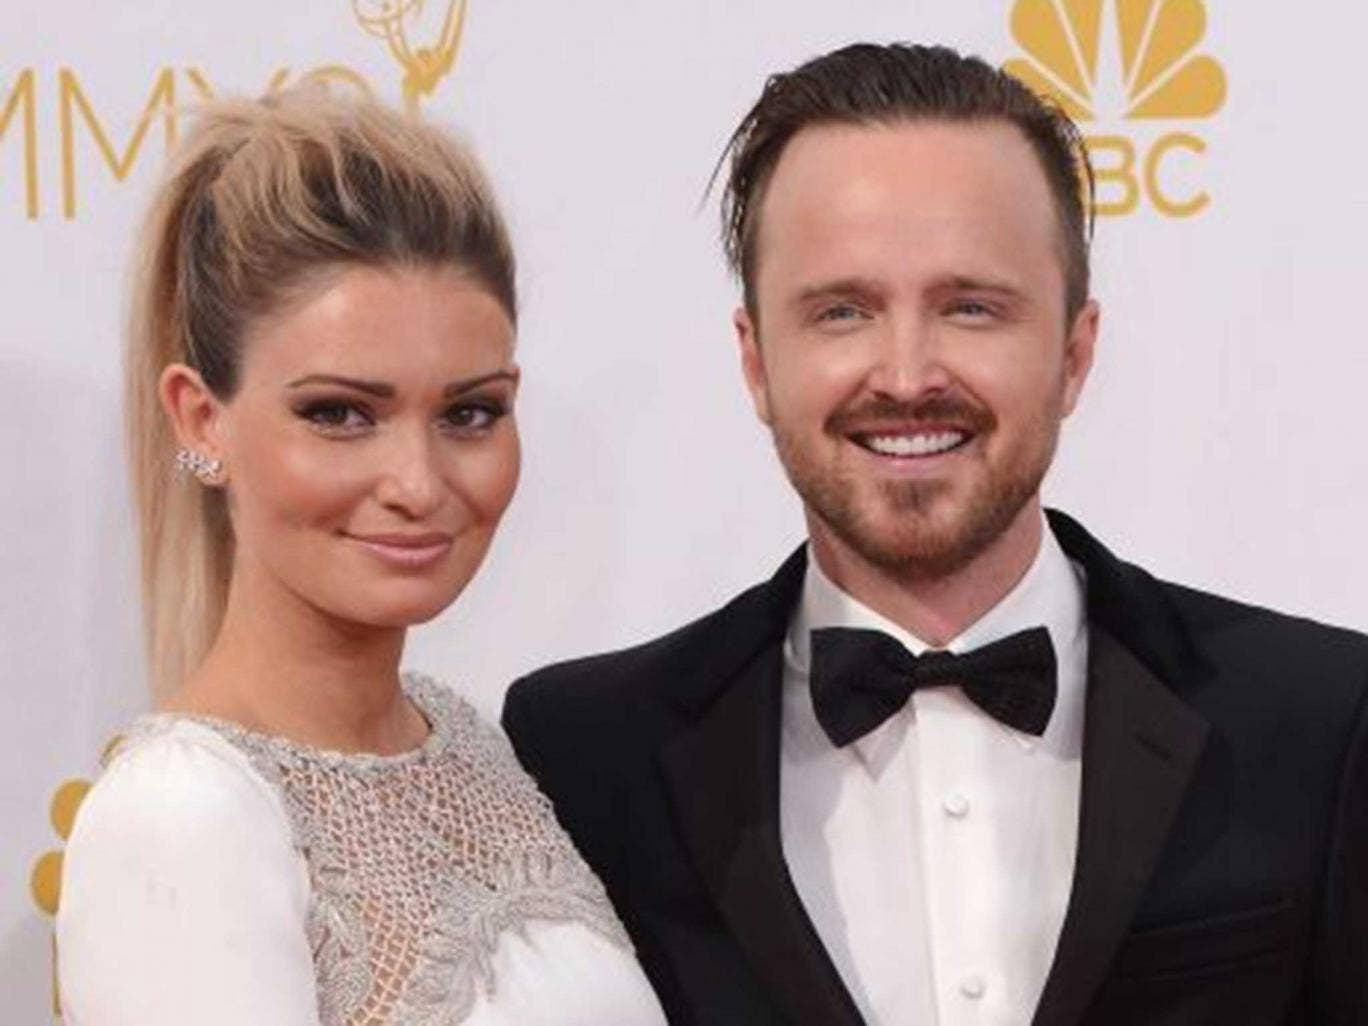 Lauren Paul with husband Aaron Paul at the Emmy's last night